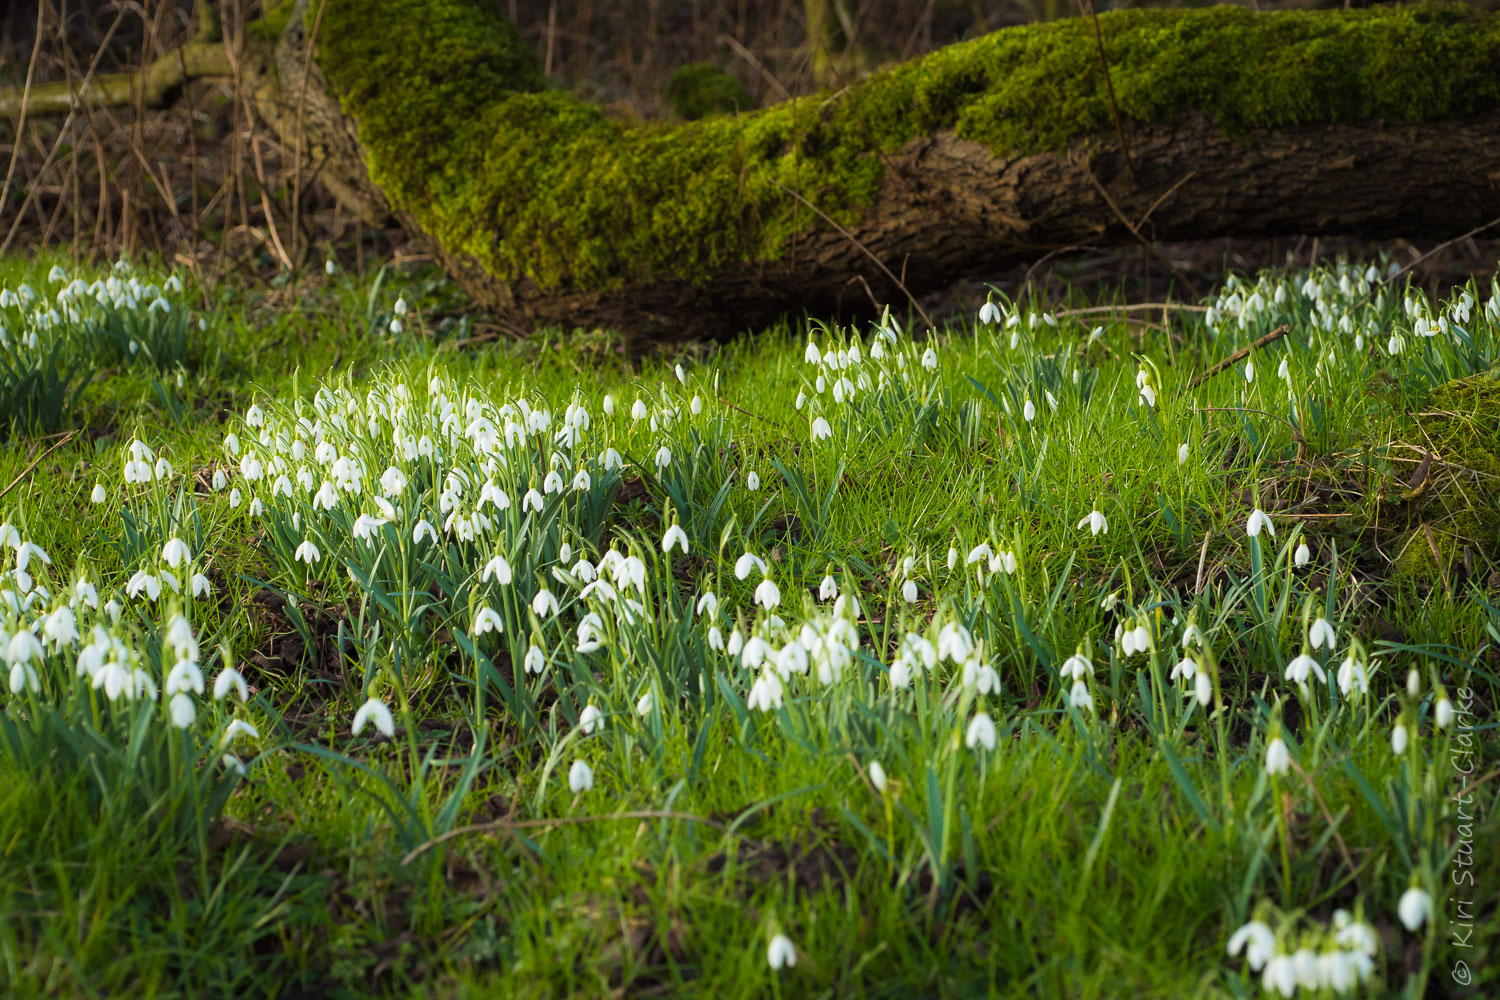 Snowdrops favour damp woodland and stream side habitats